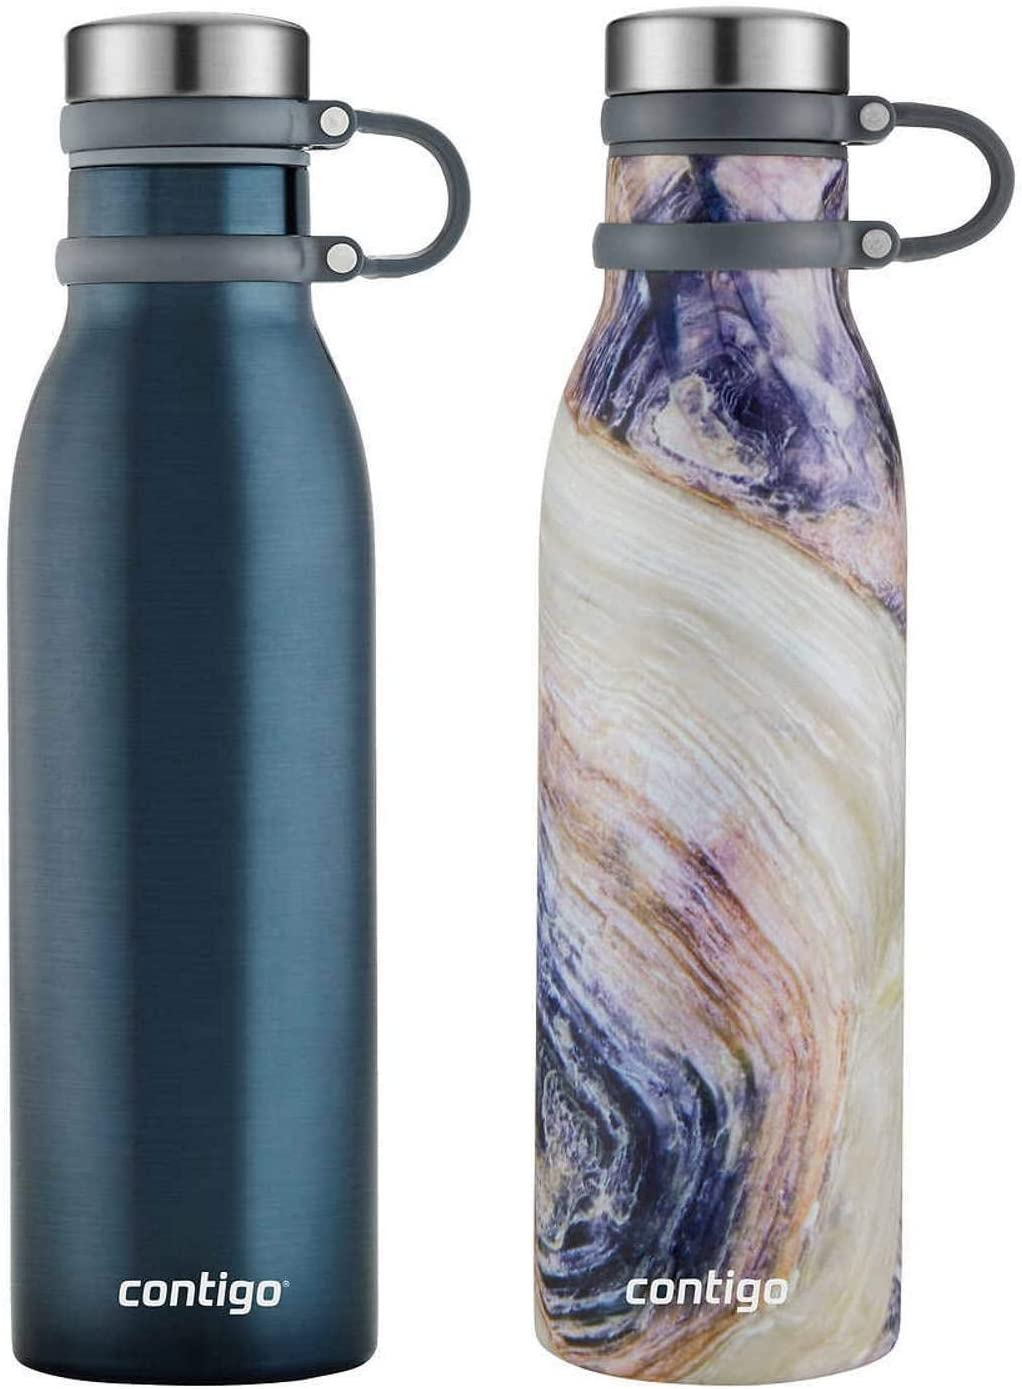 Contigo Couture Collection Vacuum-Insulated Stainless-Steel Water Bottle w/Tethered Lid, 20 oz, Midnight Blue/Twilight Shell - 2 Pack